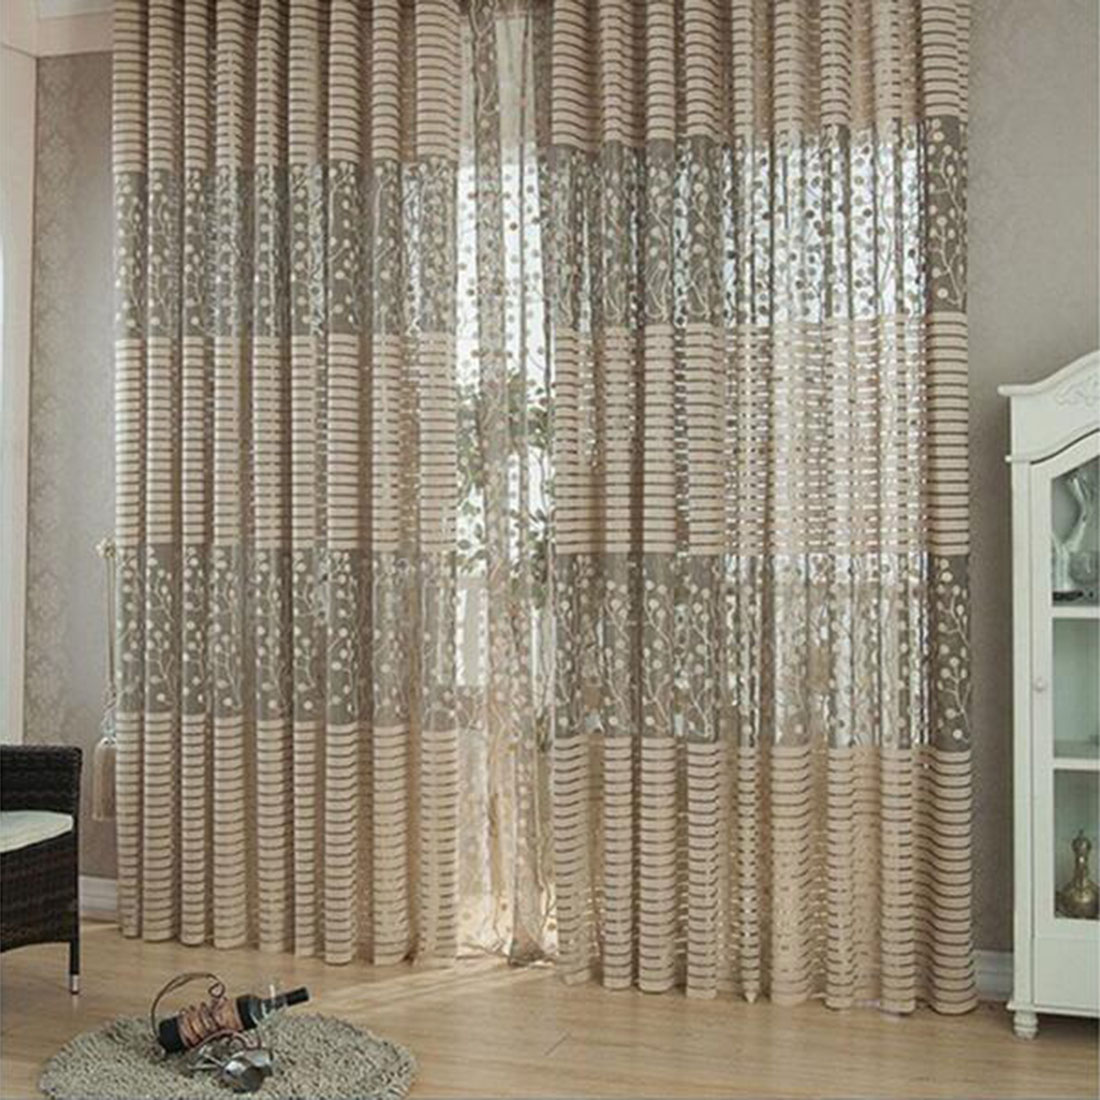 window premium by high curtains inches bedding set white thread panel com utopia amazon sheer luxurious curtain dp panels voile